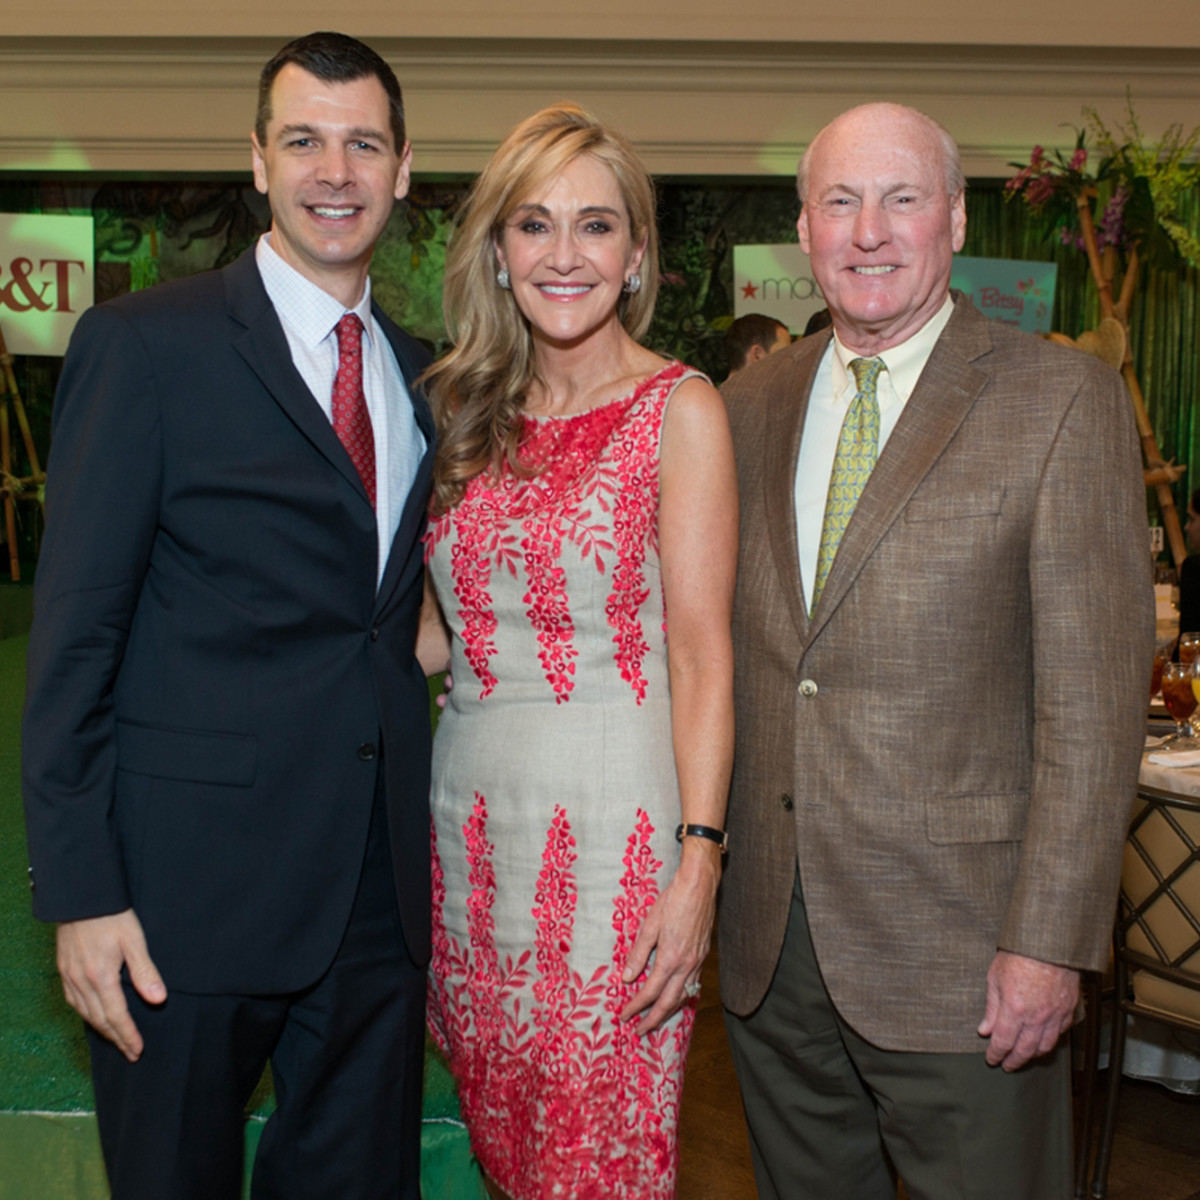 Houston Symphony Children's Fashion Show, March 2016, Mark Hanson, Jana Arnoldy, Scotty Arnoldy